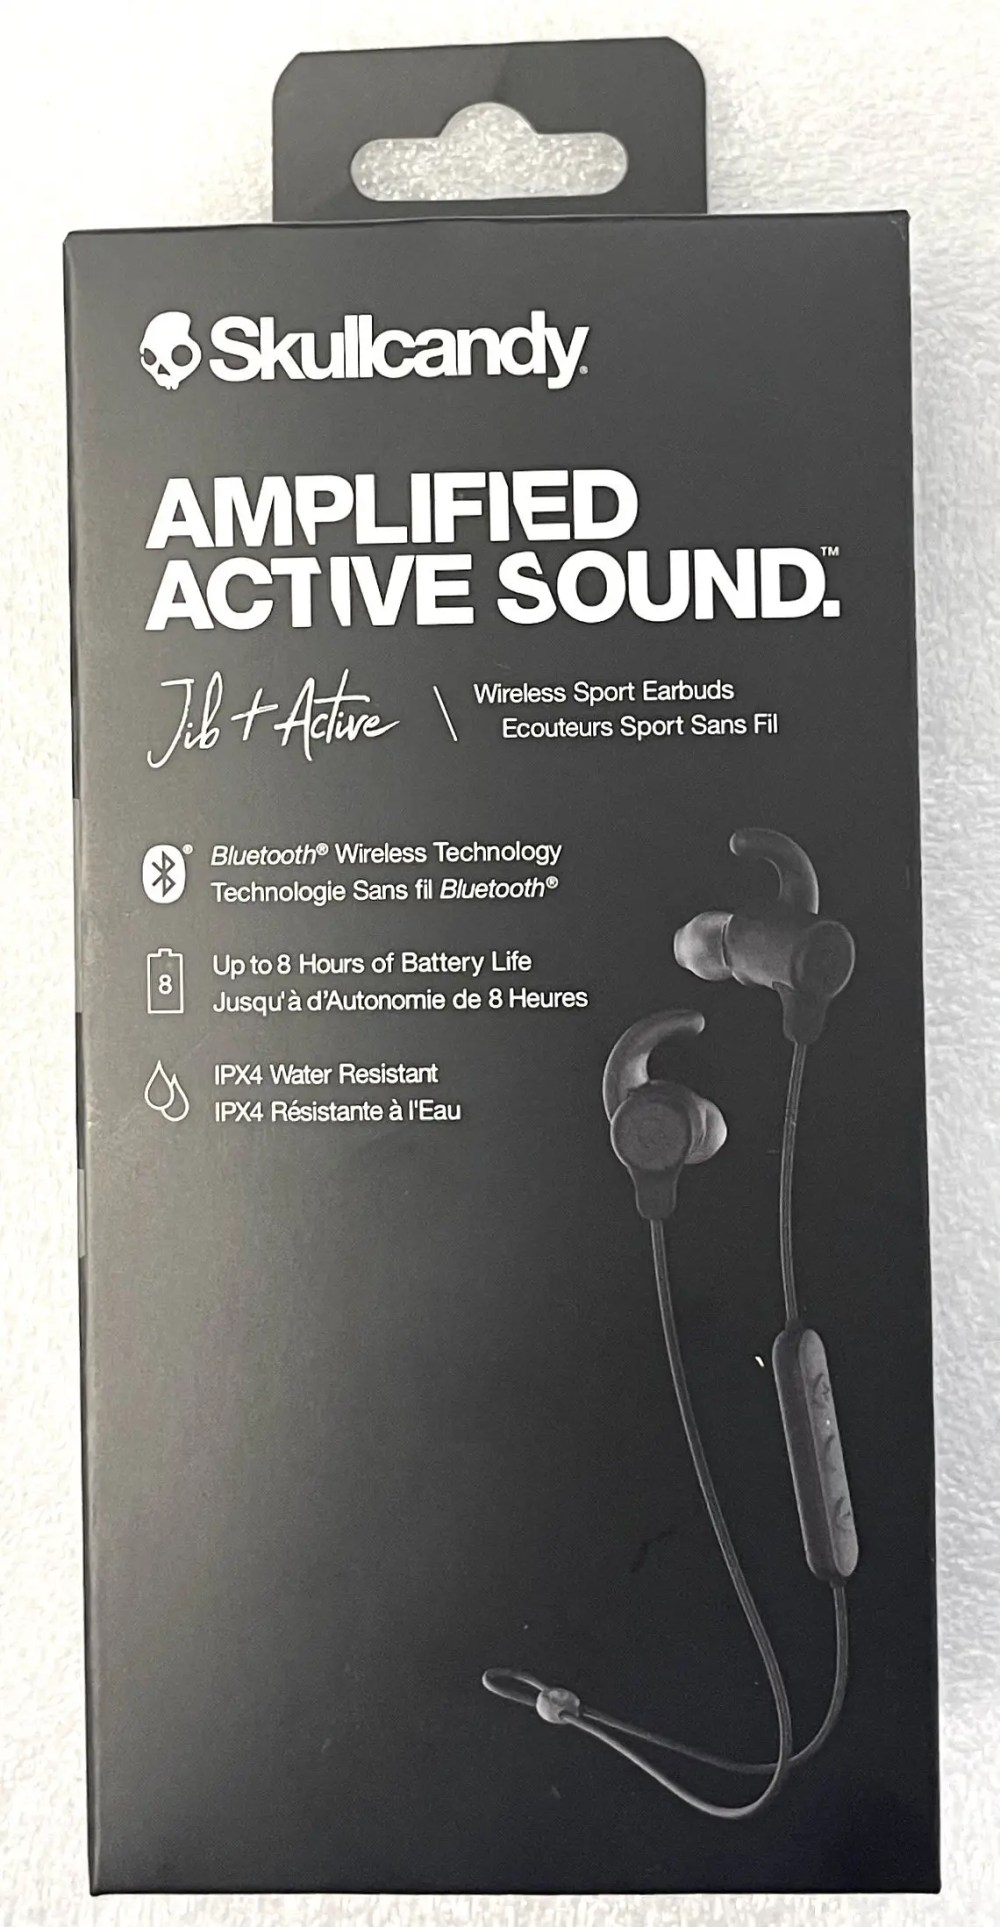 Skullcandy Amplified Active Sound Jib+ Active Wireless Earbuds